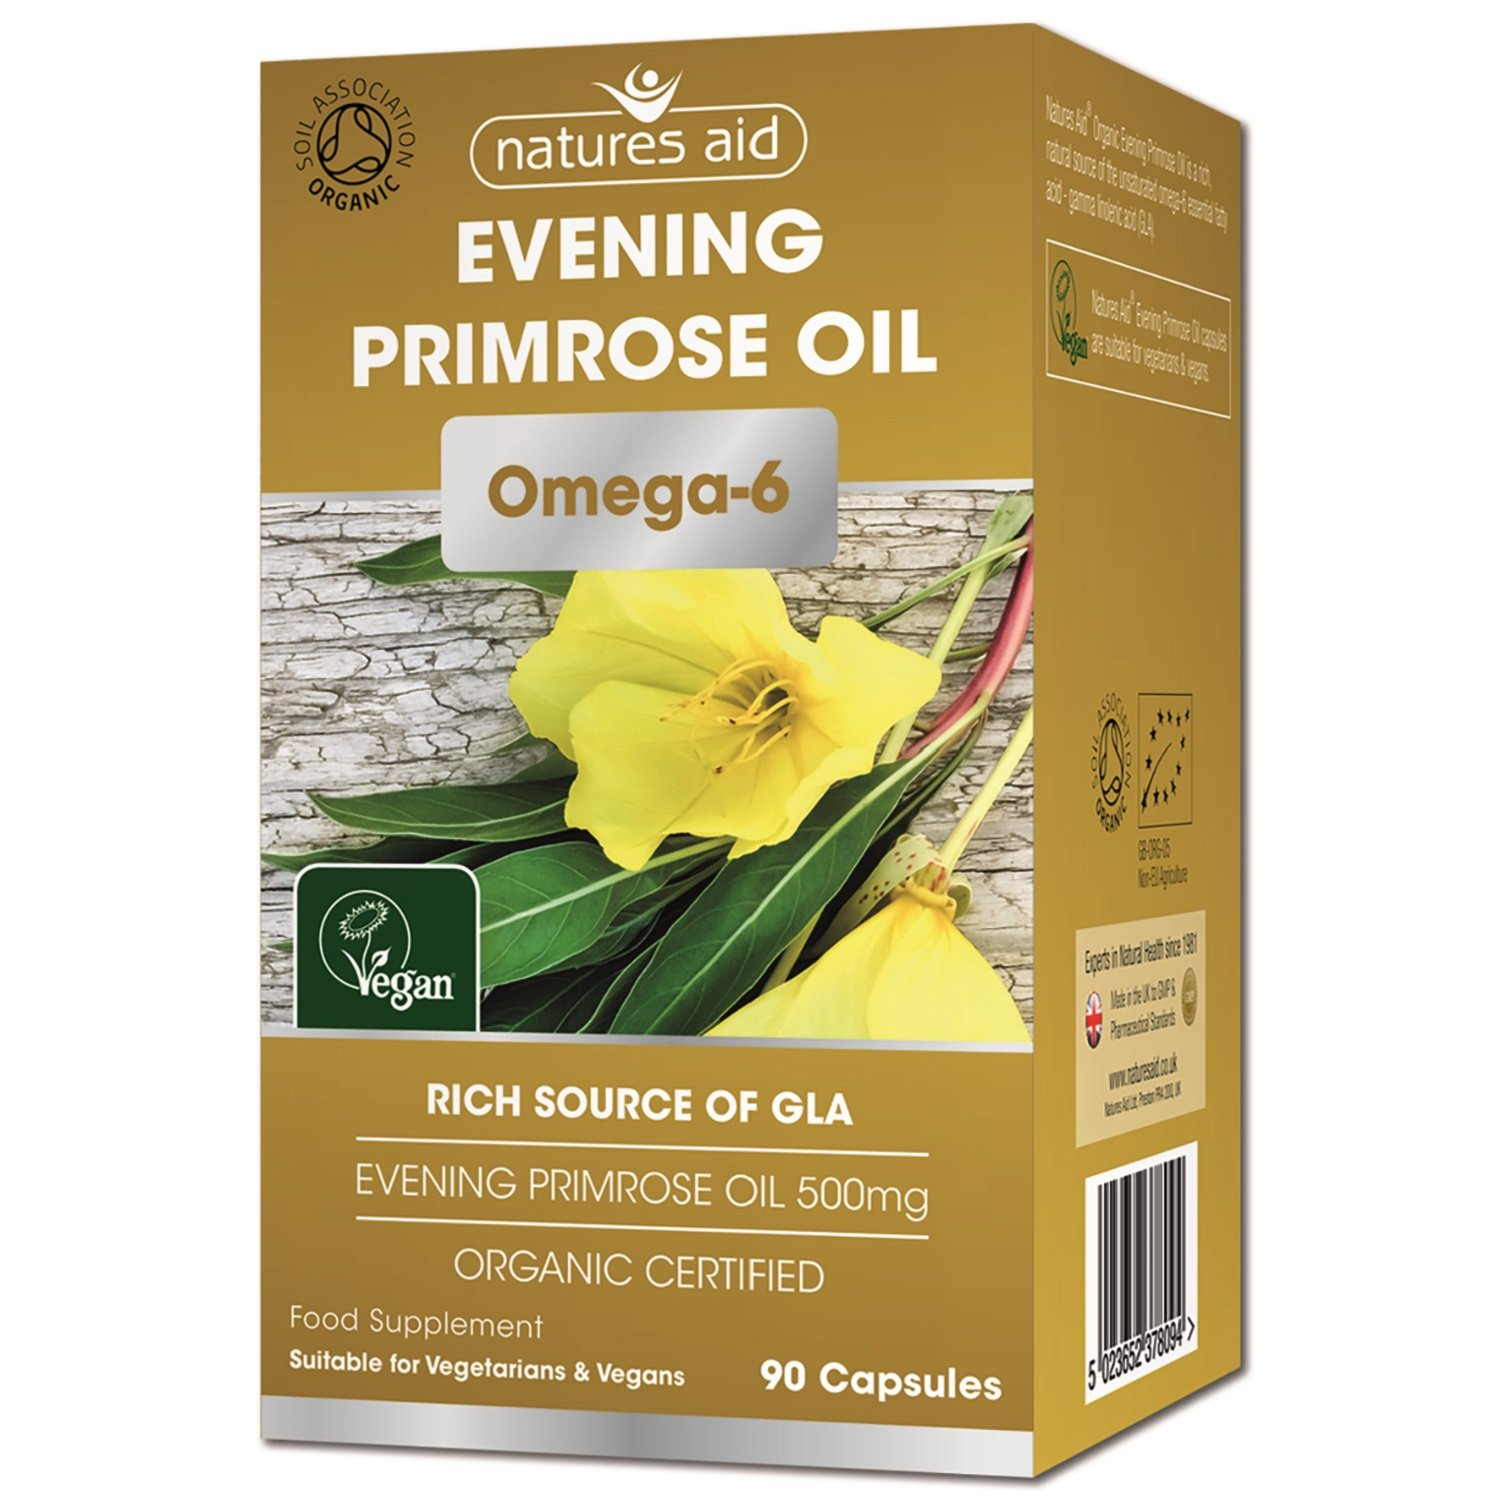 Natures Aid Organic Evening Primrose Oil Capsules - Pack of 90